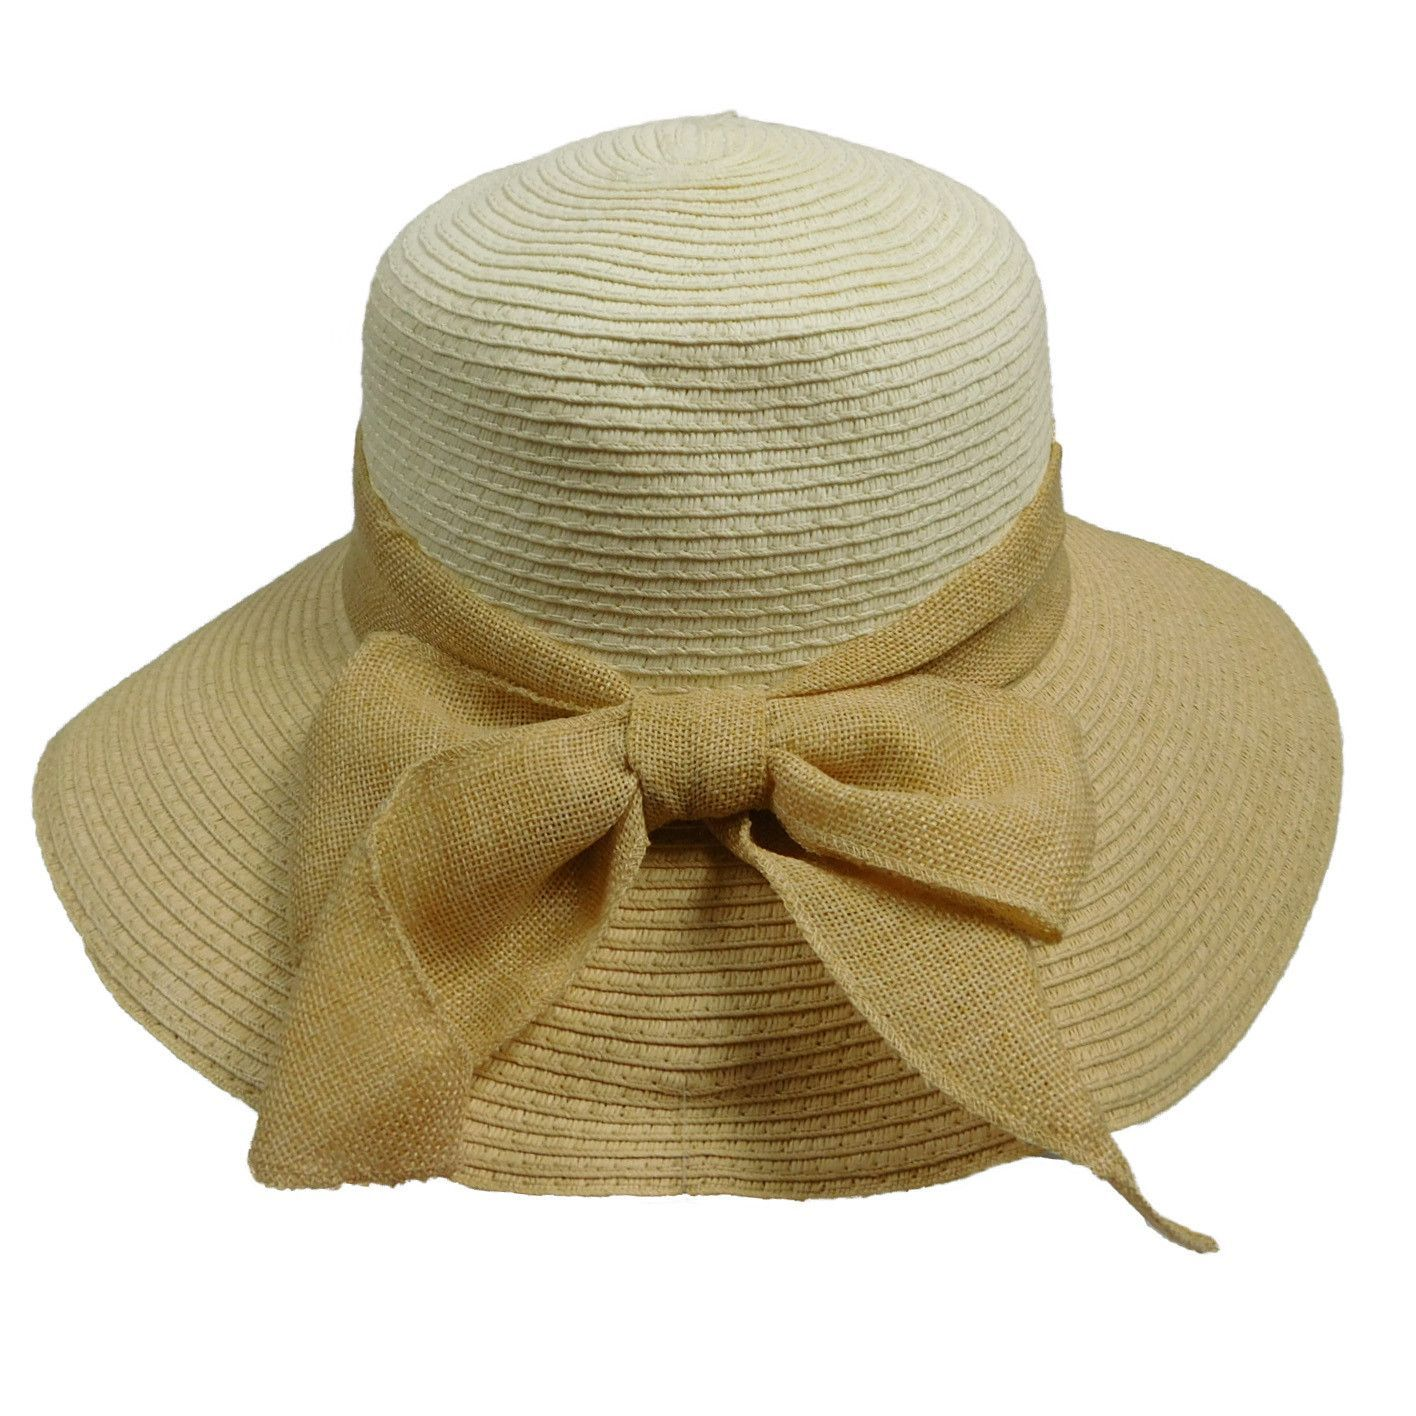 5c7e89699f5a7 Two Tone Sun Hat with Linen Bow